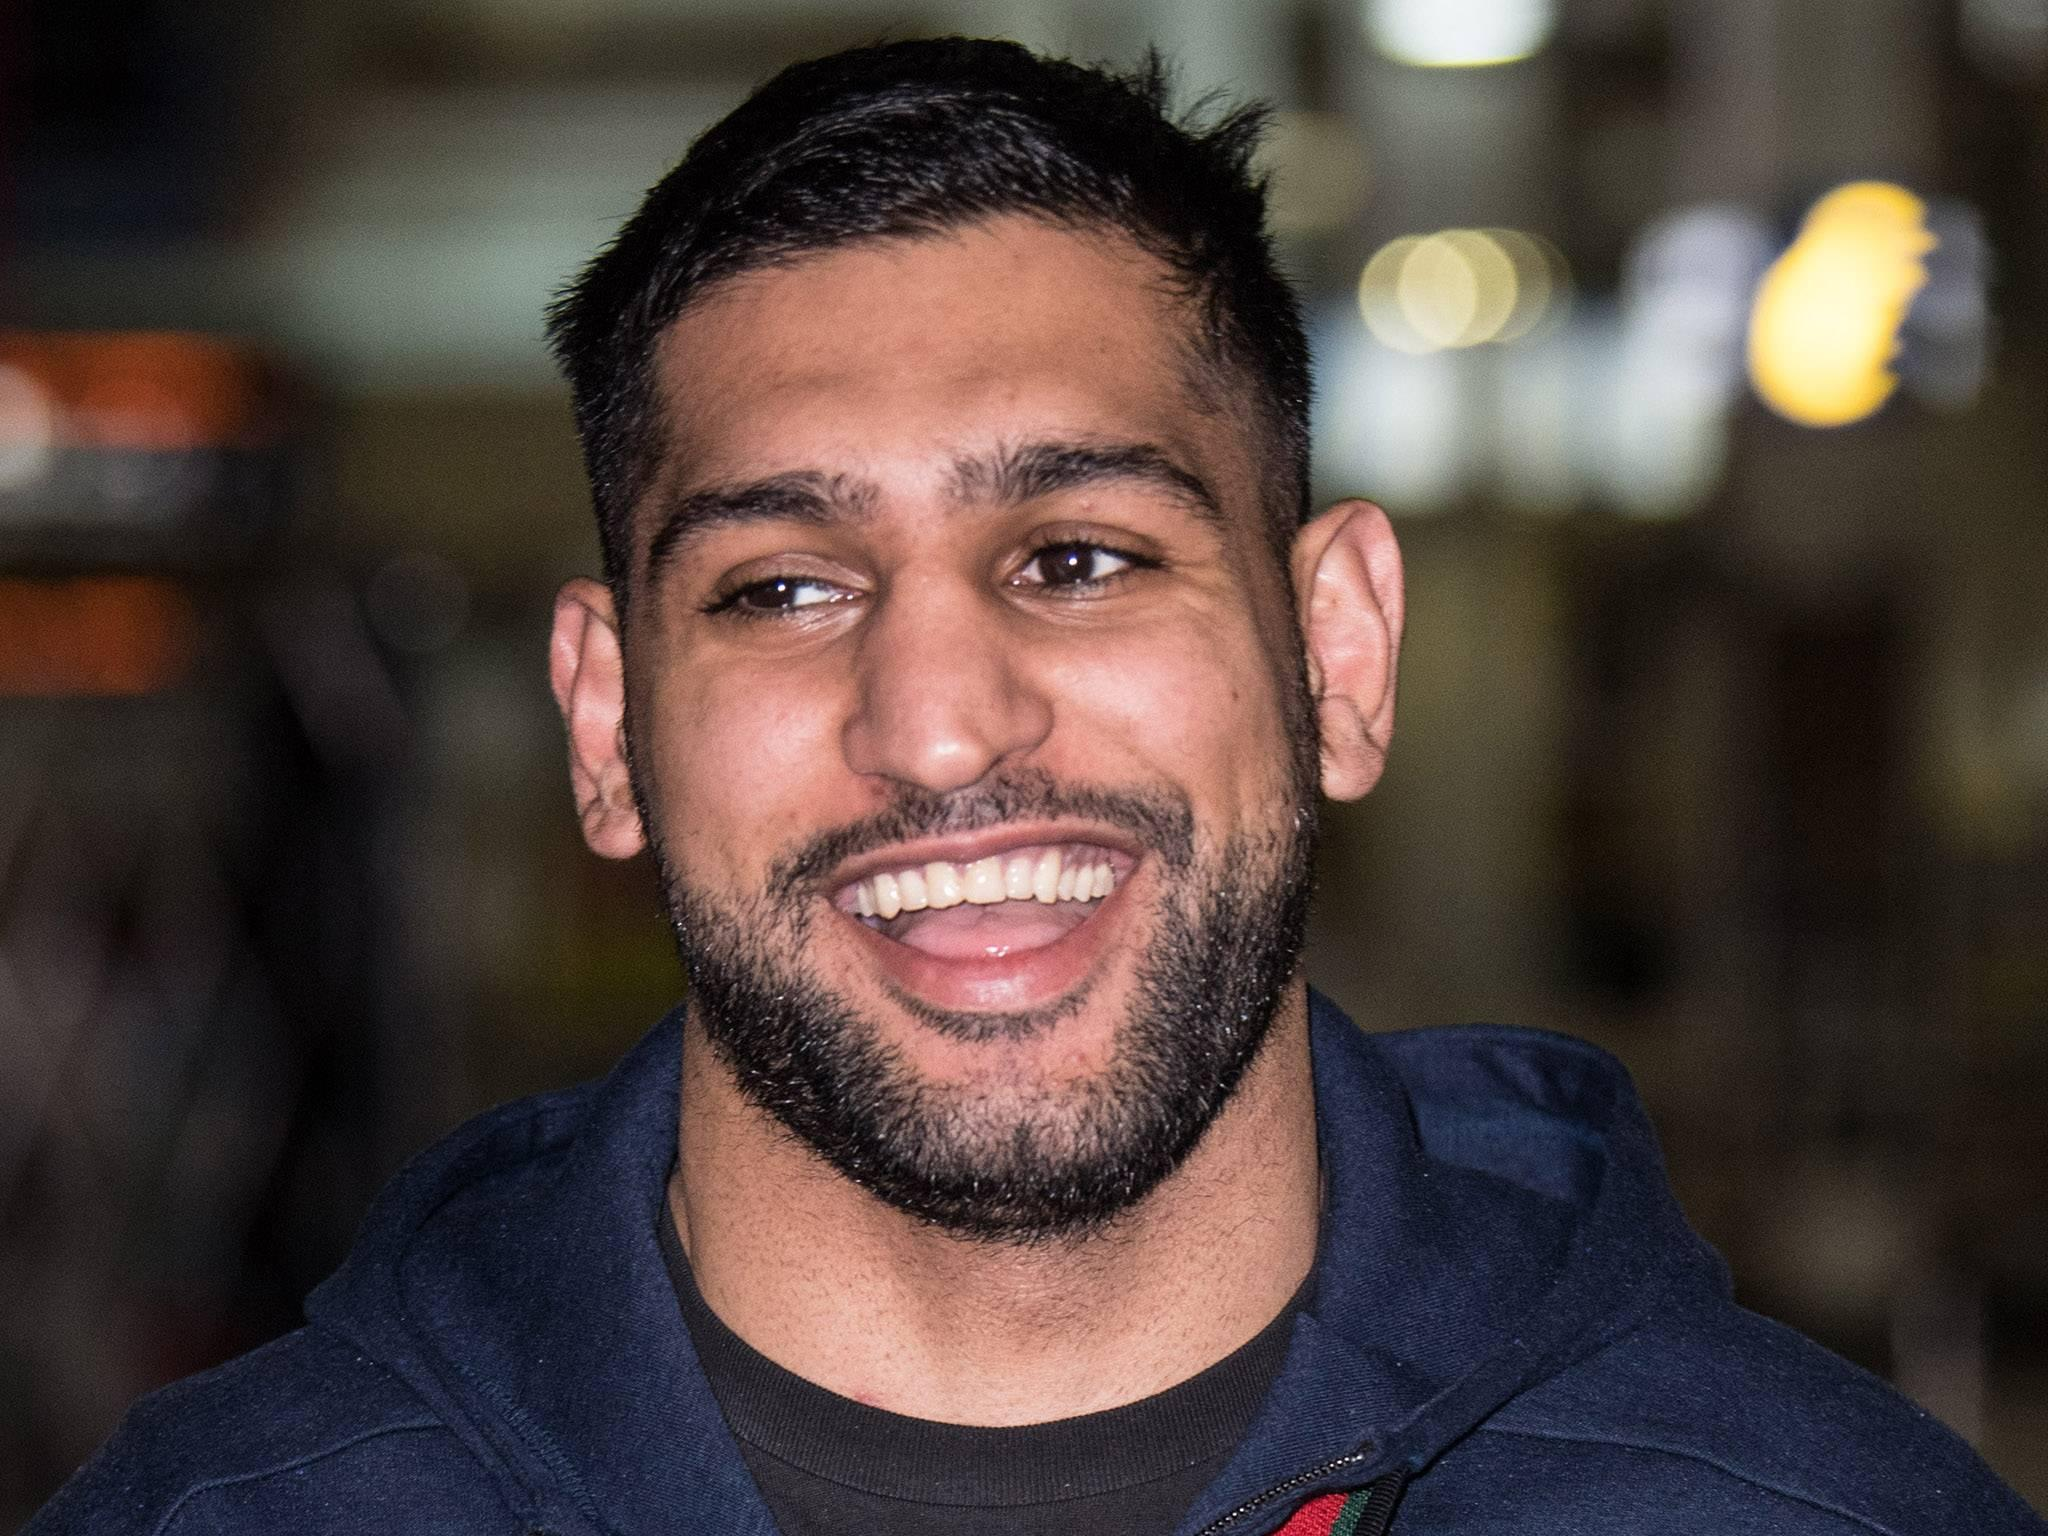 Boxer Amir Khan issued death threats and abuse for putting up a Christmas tree